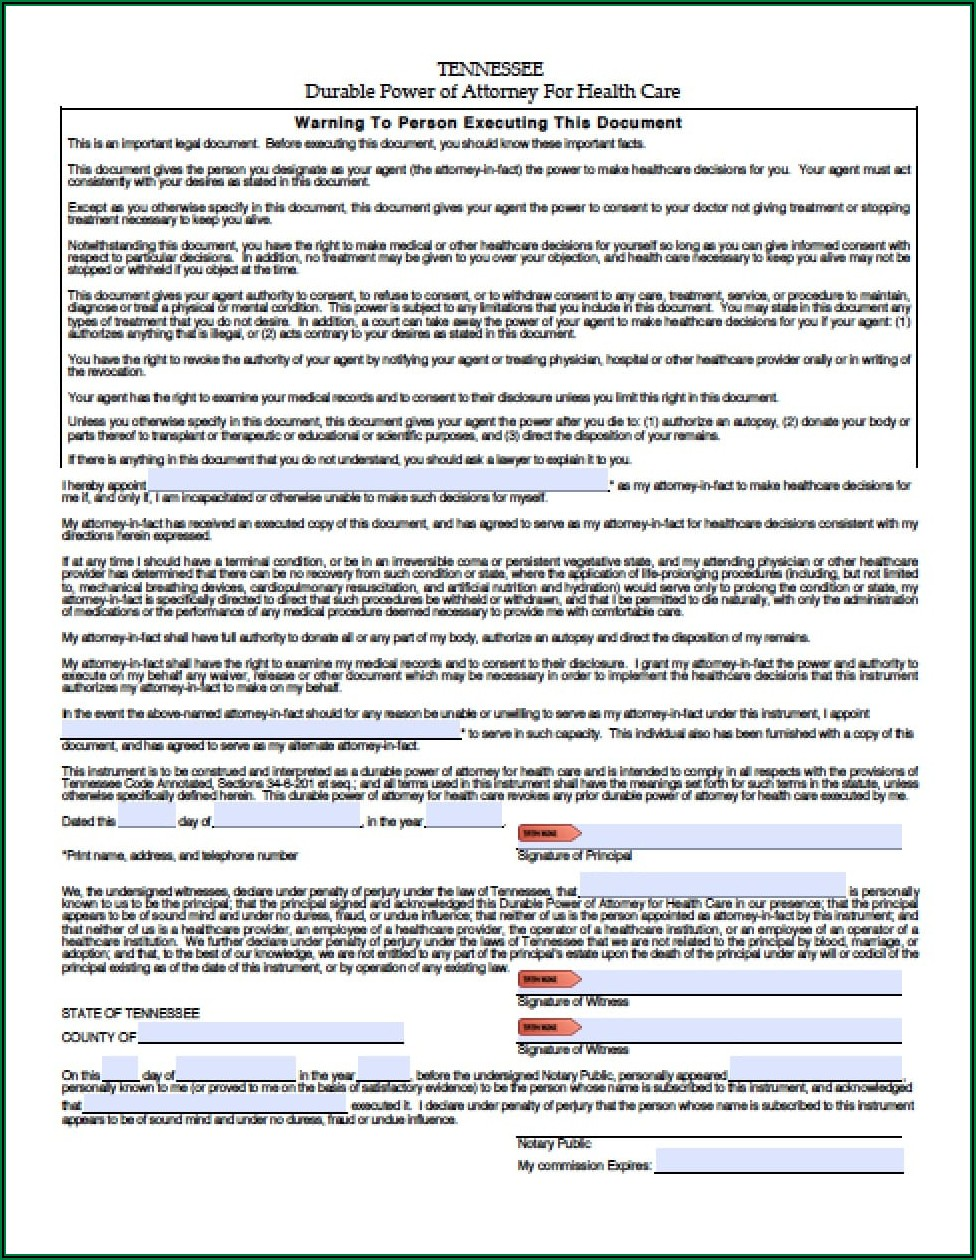 Tennessee Durable Power Of Attorney For Health Care Form